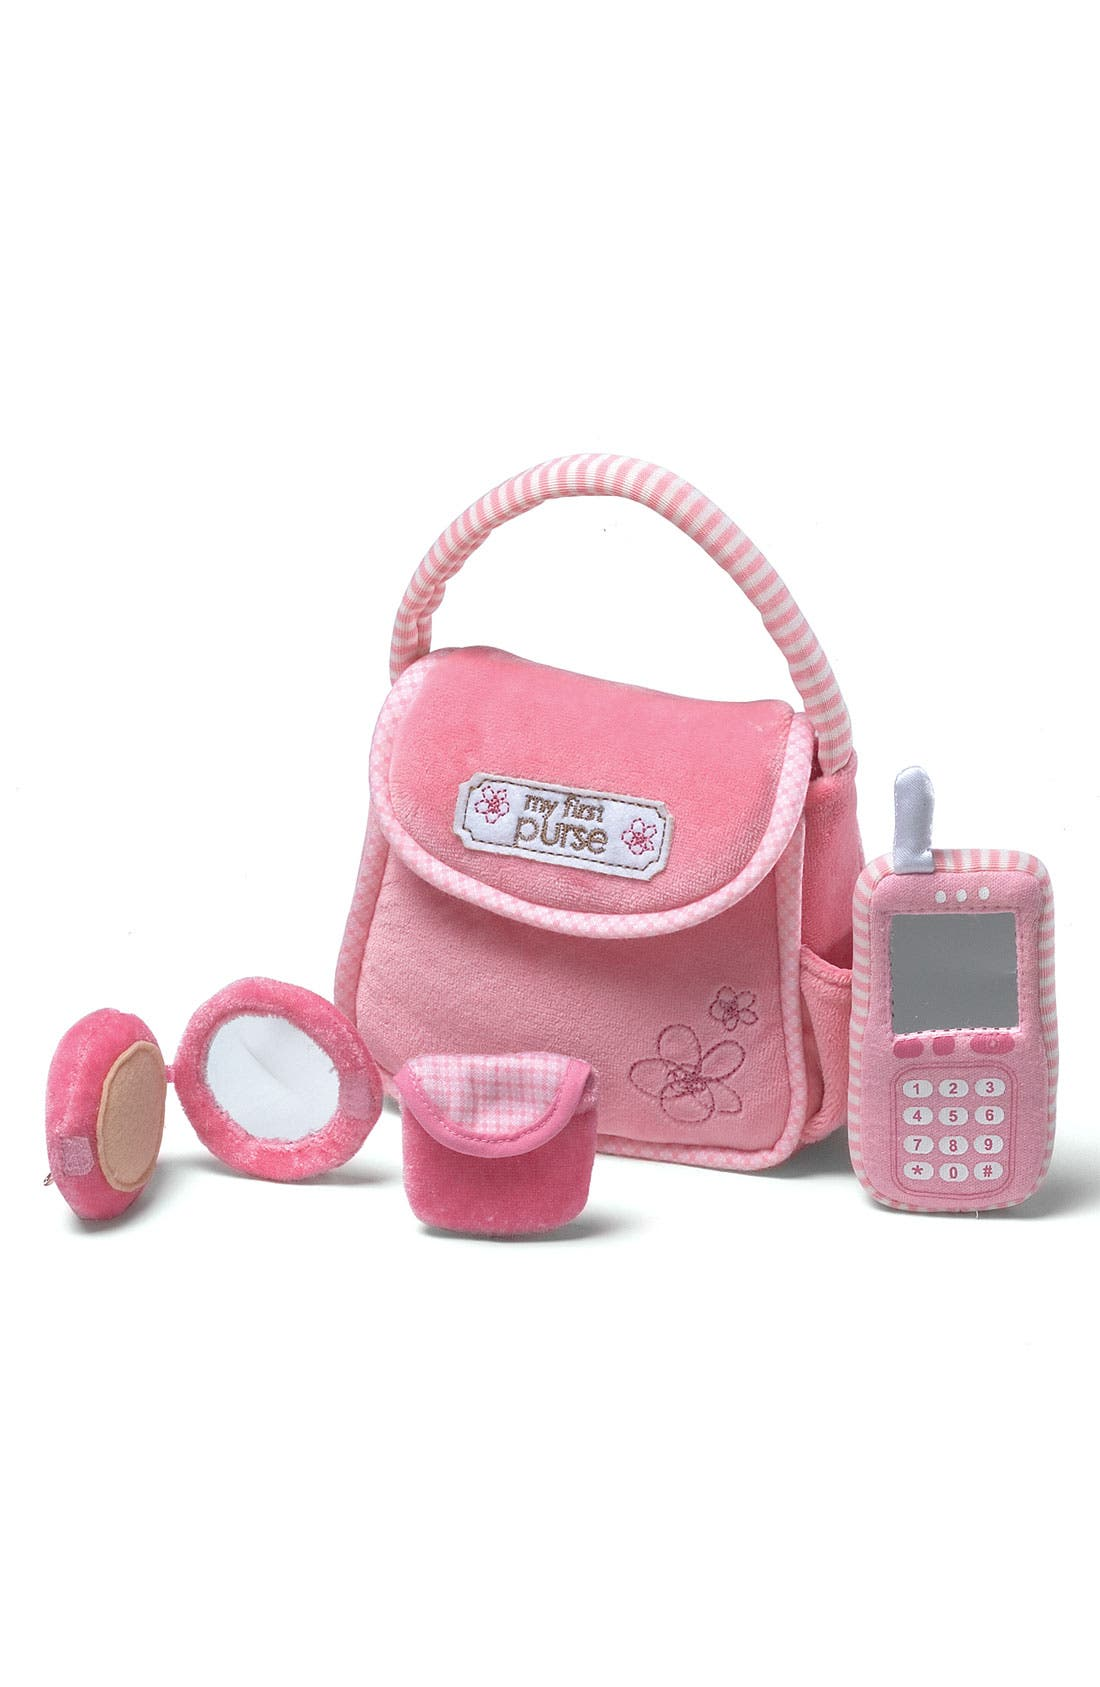 Alternate Image 1 Selected - Baby Gund 'My First Purse' Play Set